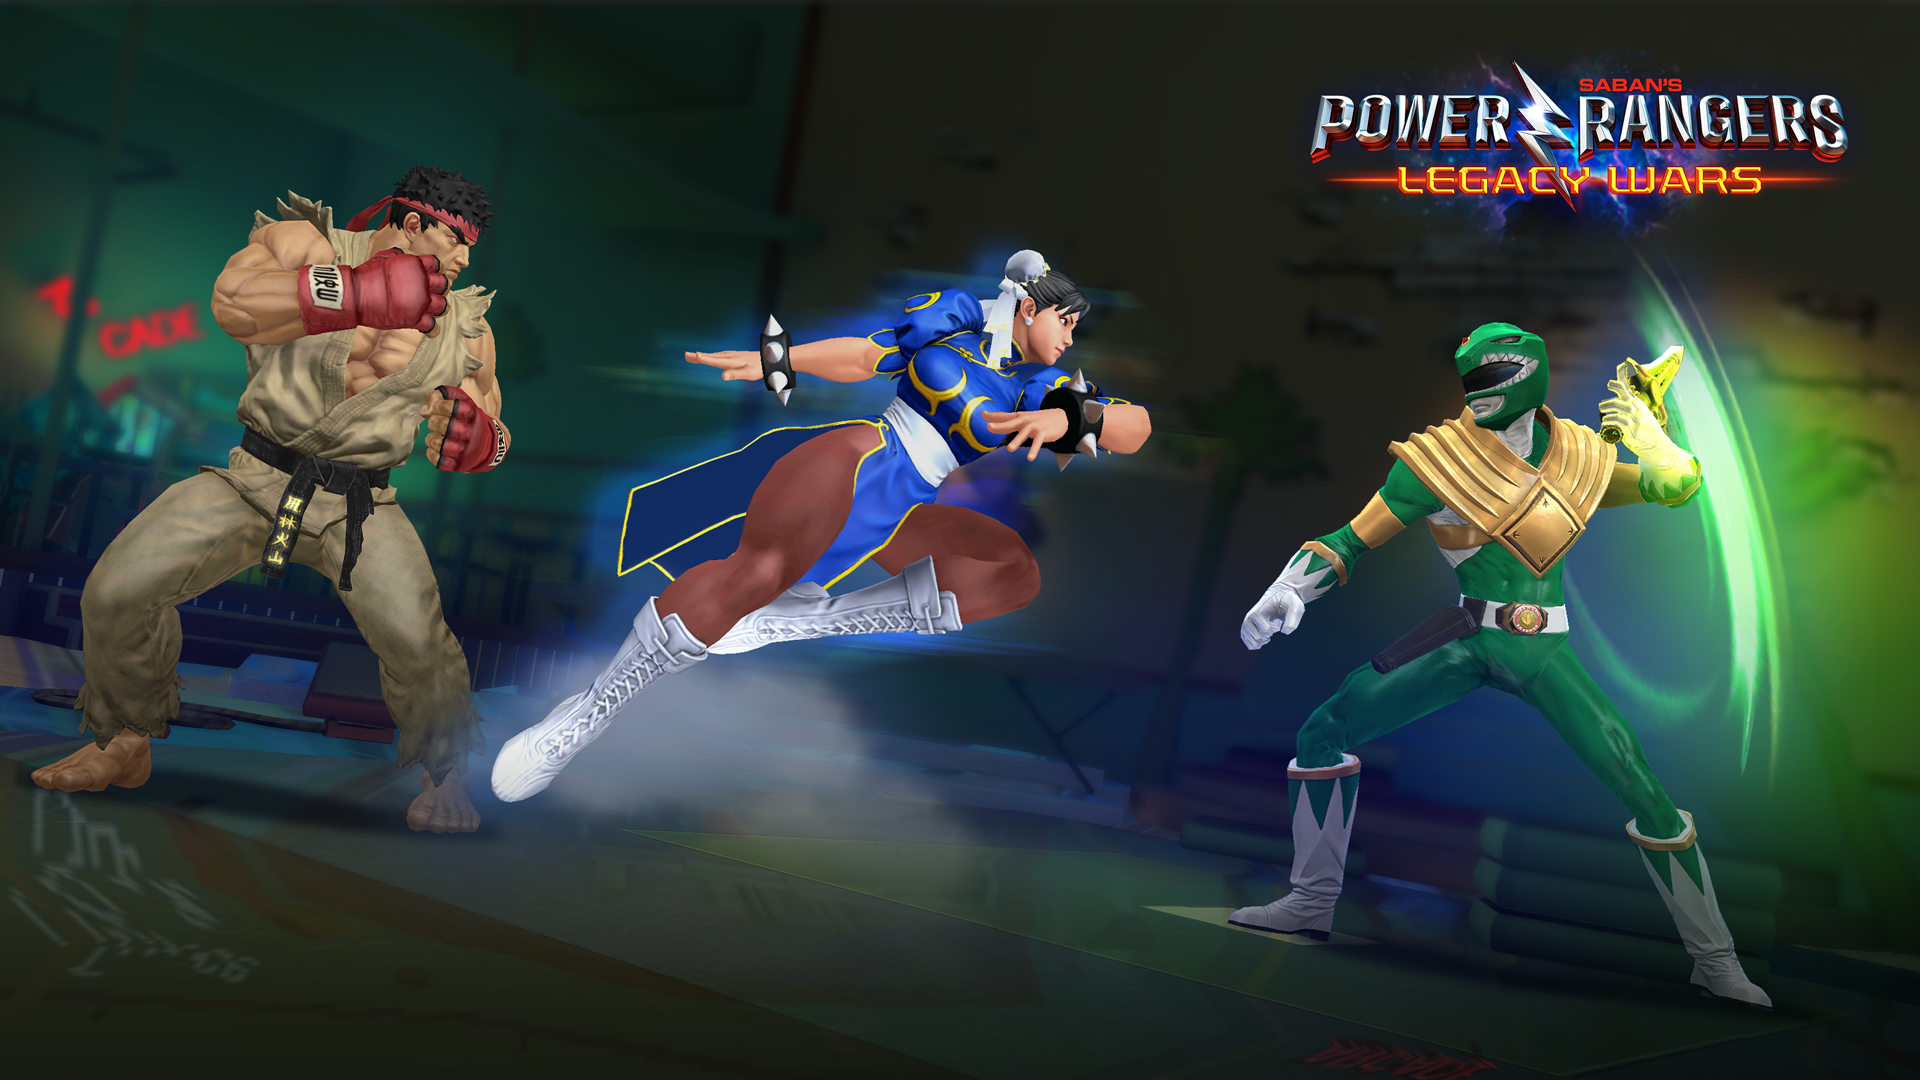 Power Rangers Legacy Wars Mobile Game Adds Street Fighter